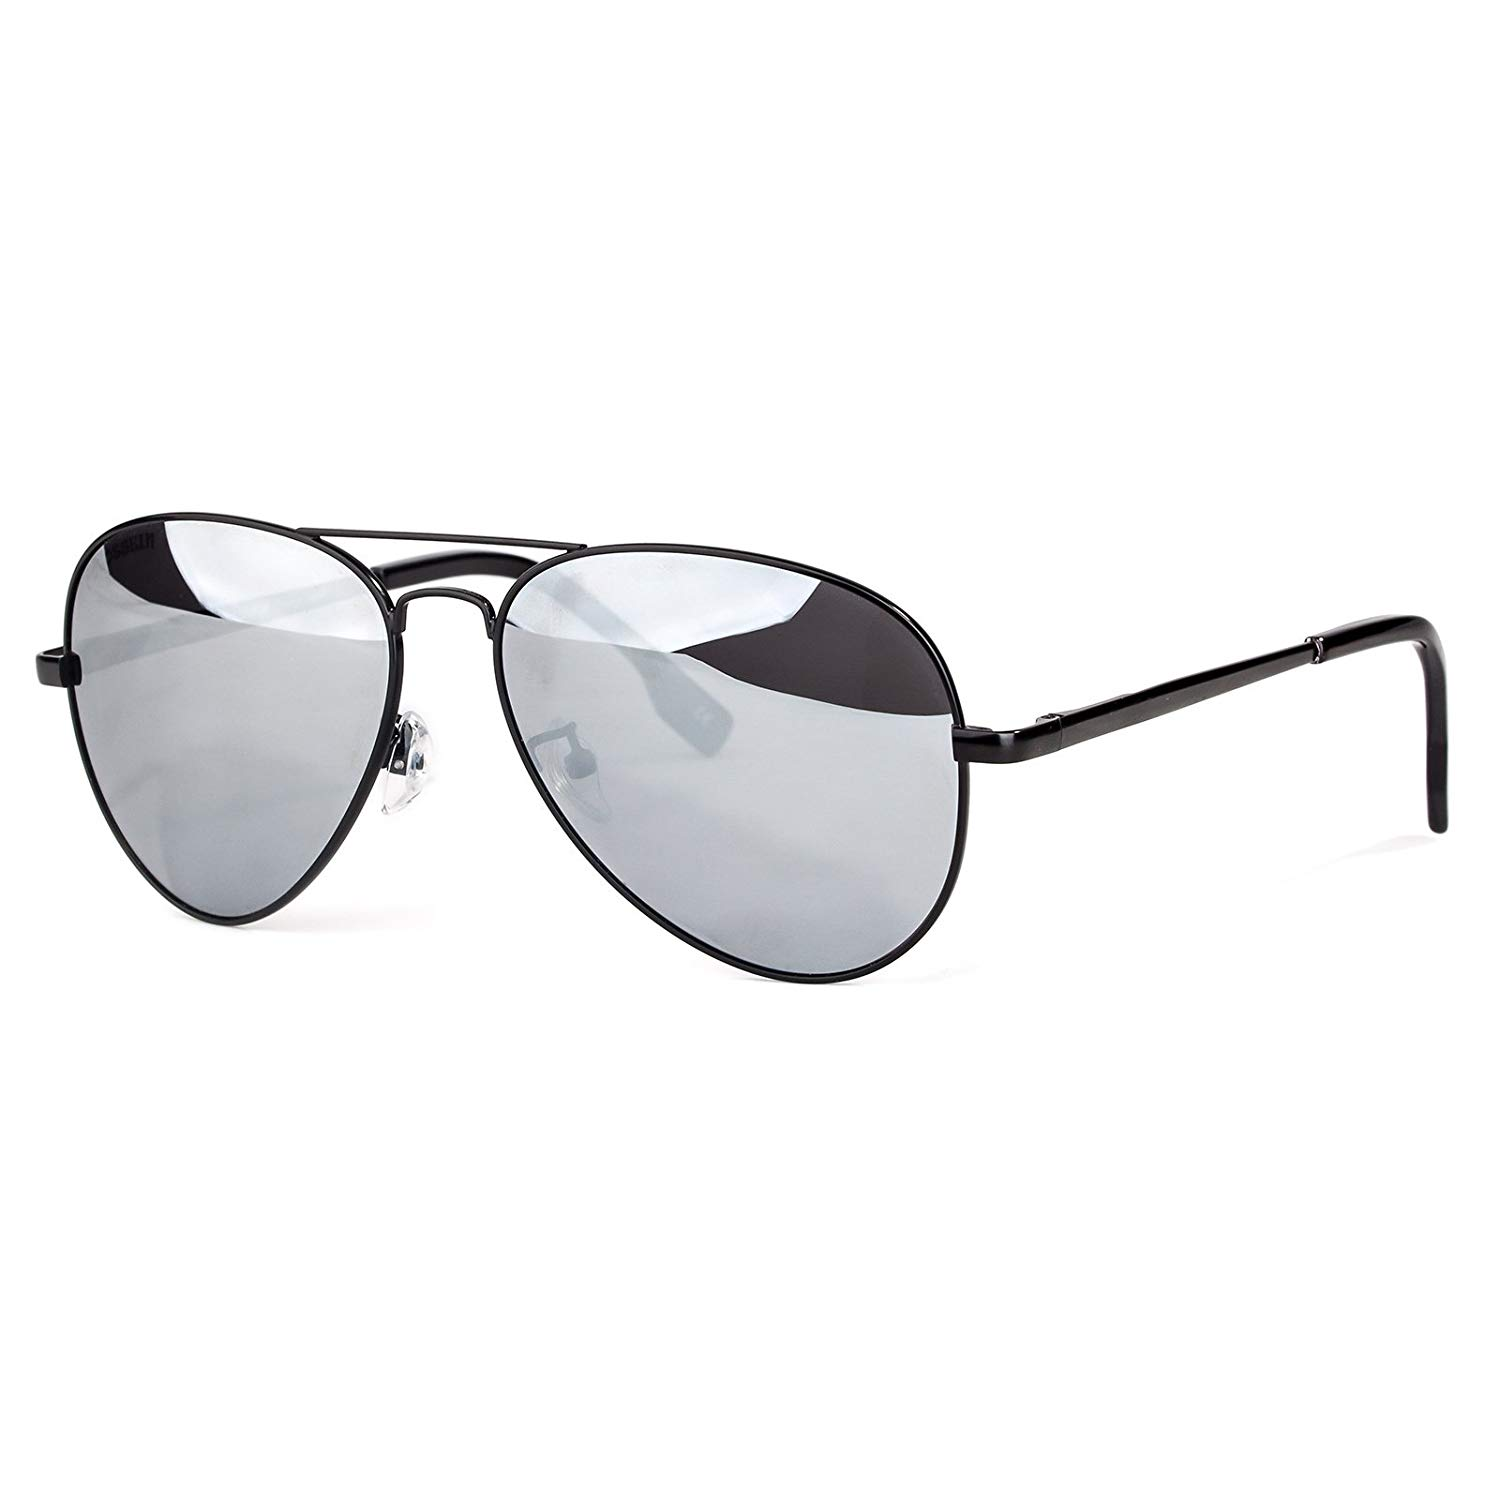 f77716cc6f5 Get Quotations · Mens Sunglasses Aviator